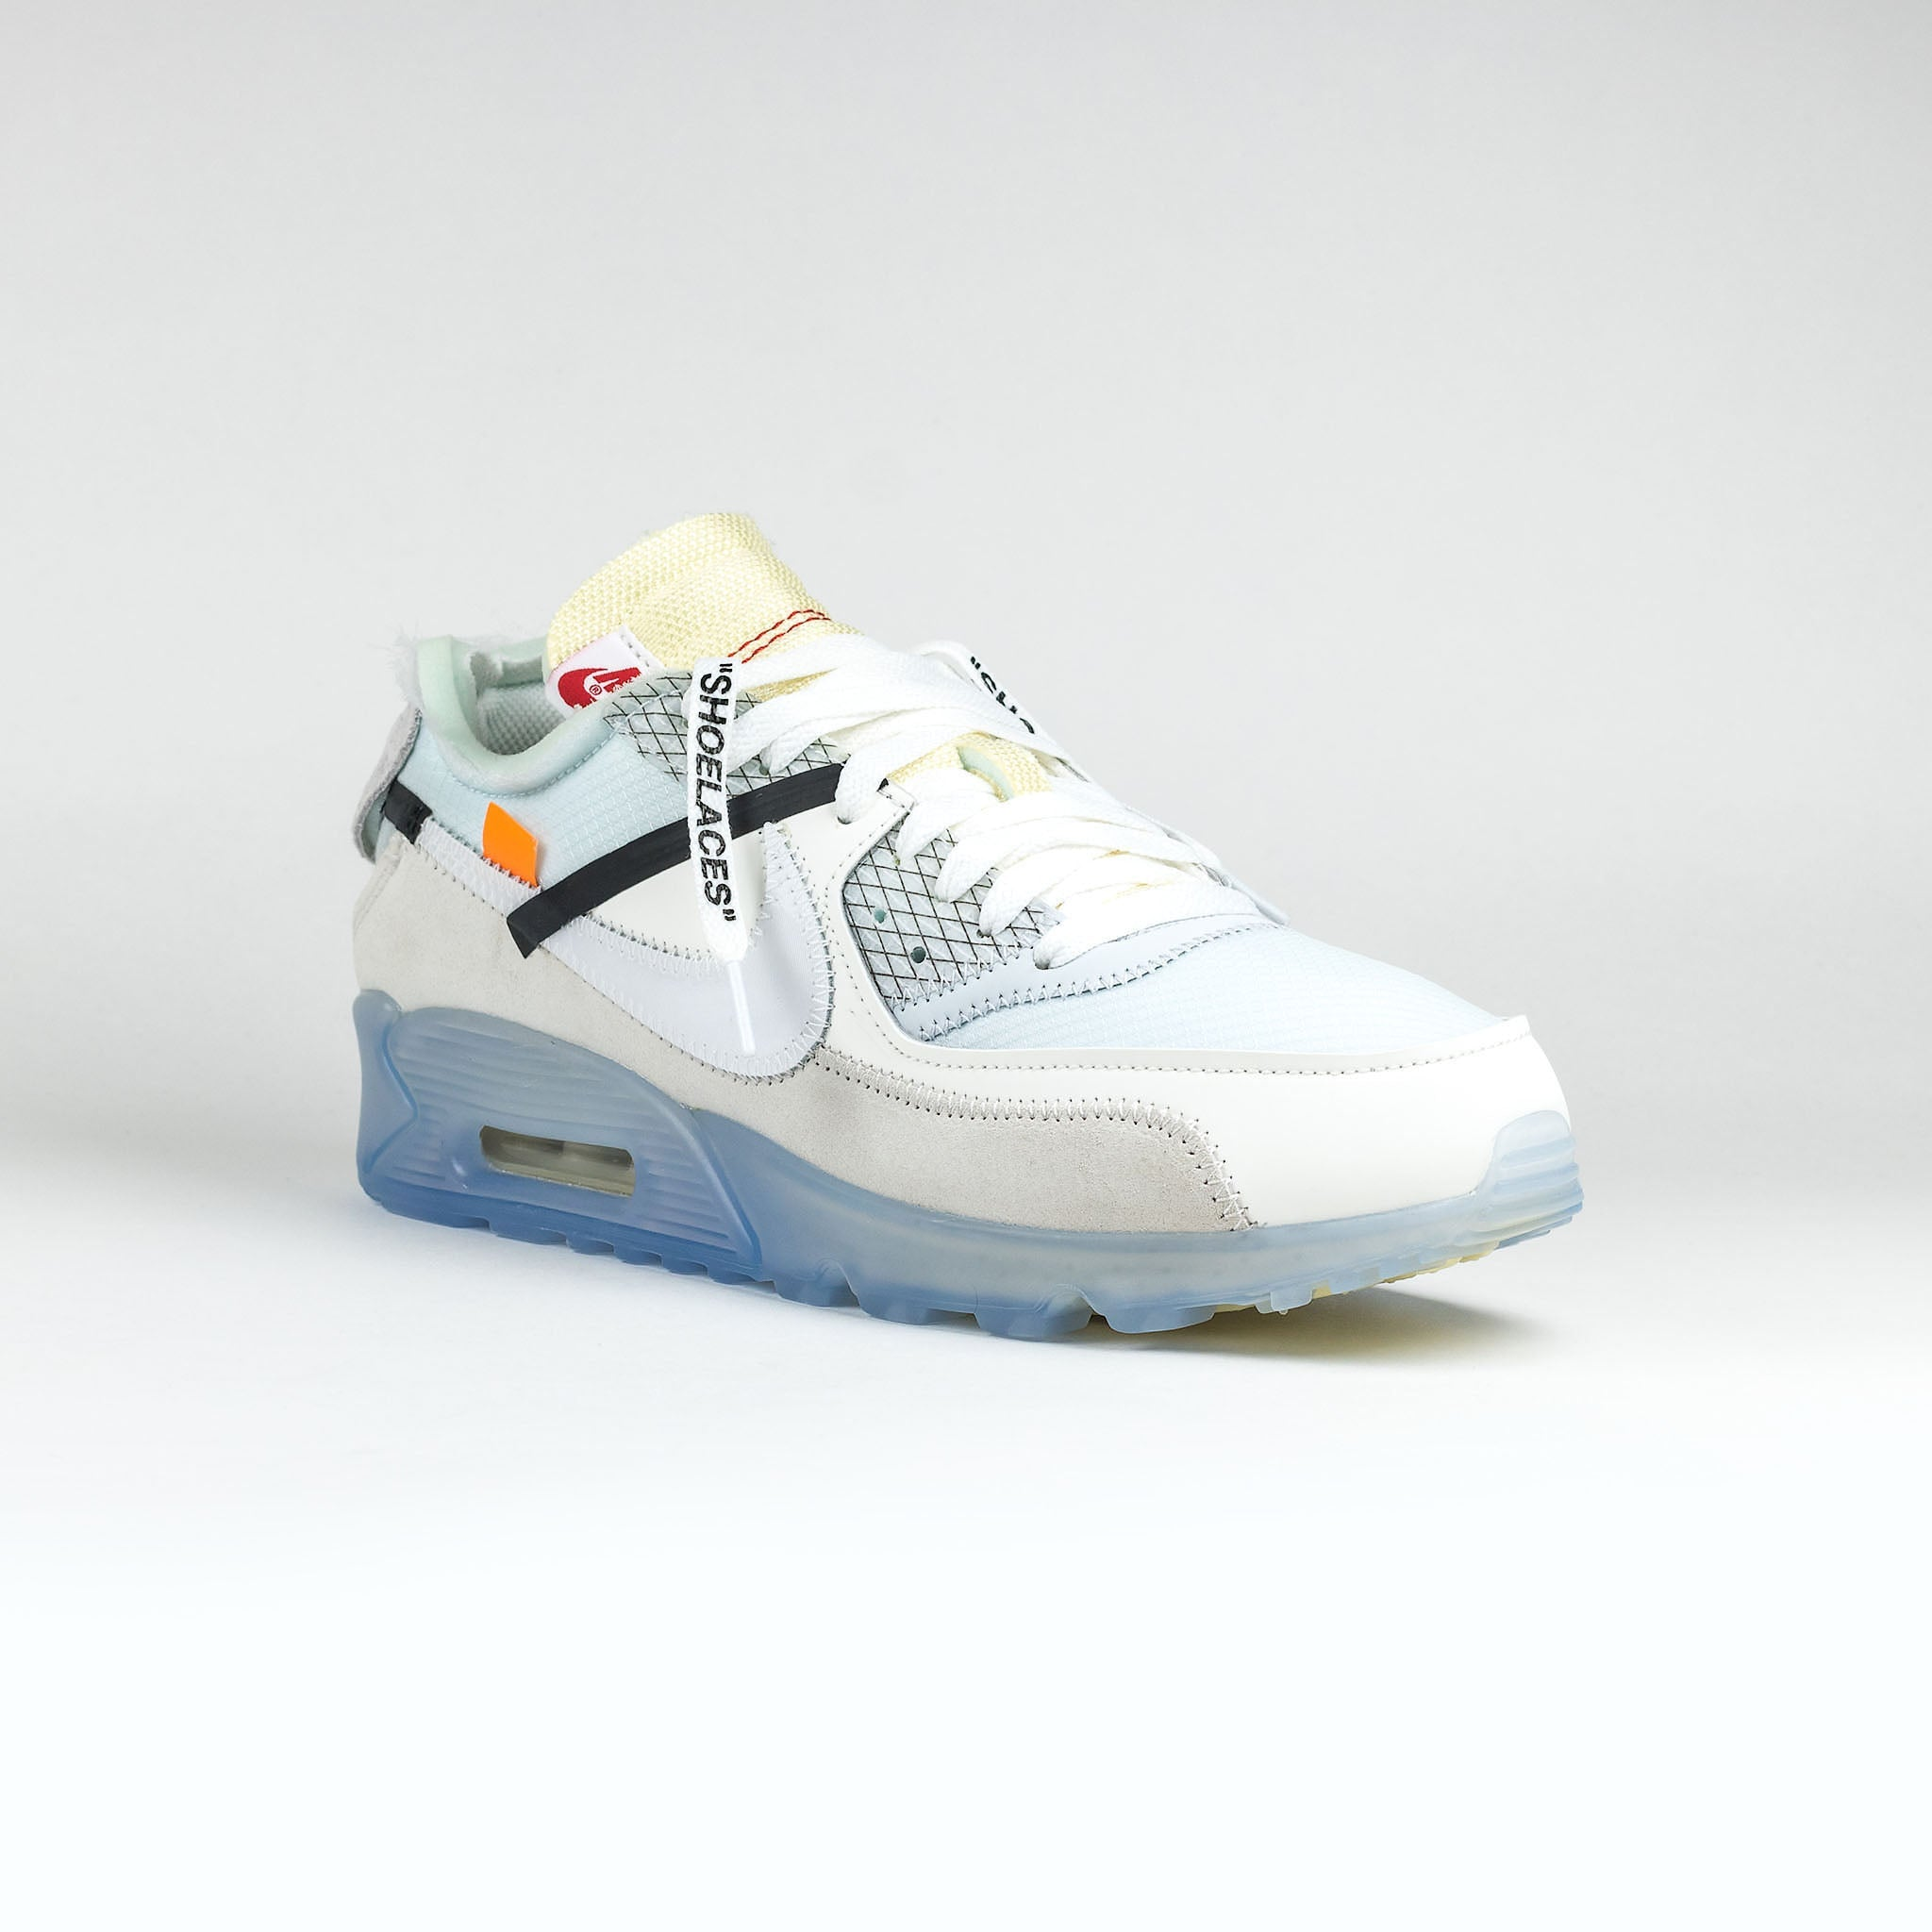 sports shoes f88ce b7d36 Nike x Off White Air Max 90 White